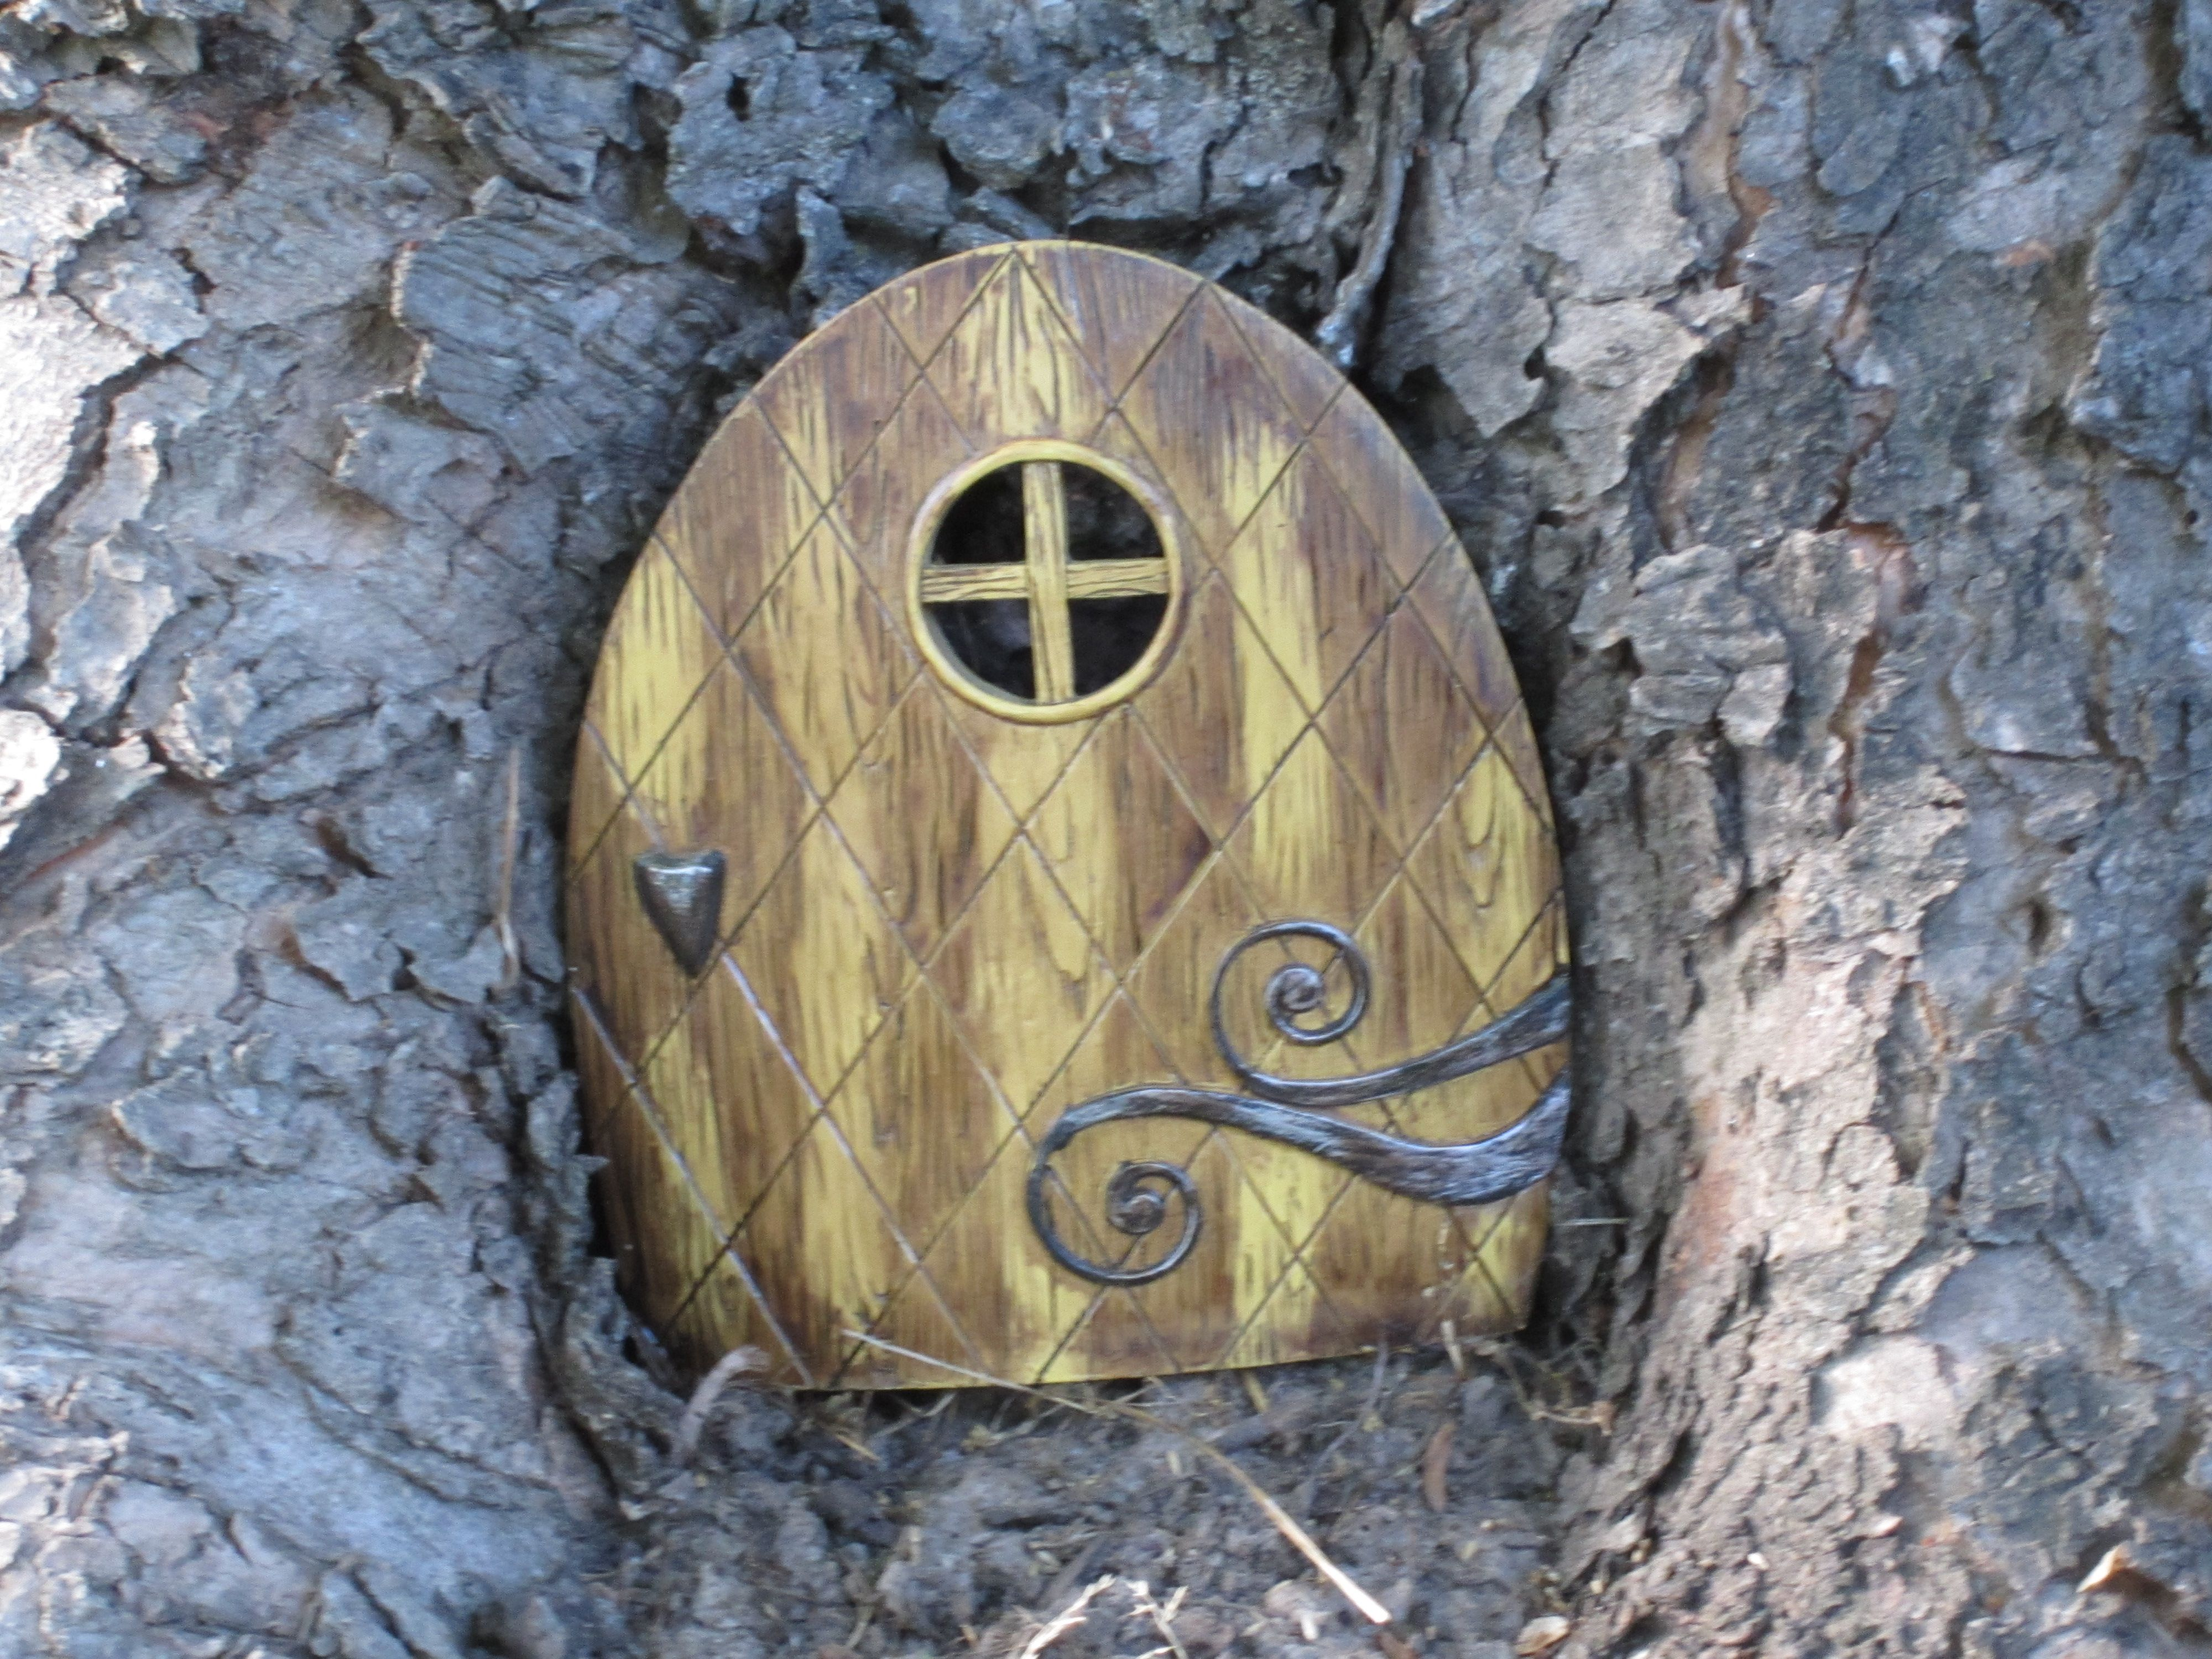 A friend got me this little elf door. It just fits in one of the nooks at the base of my old maple.